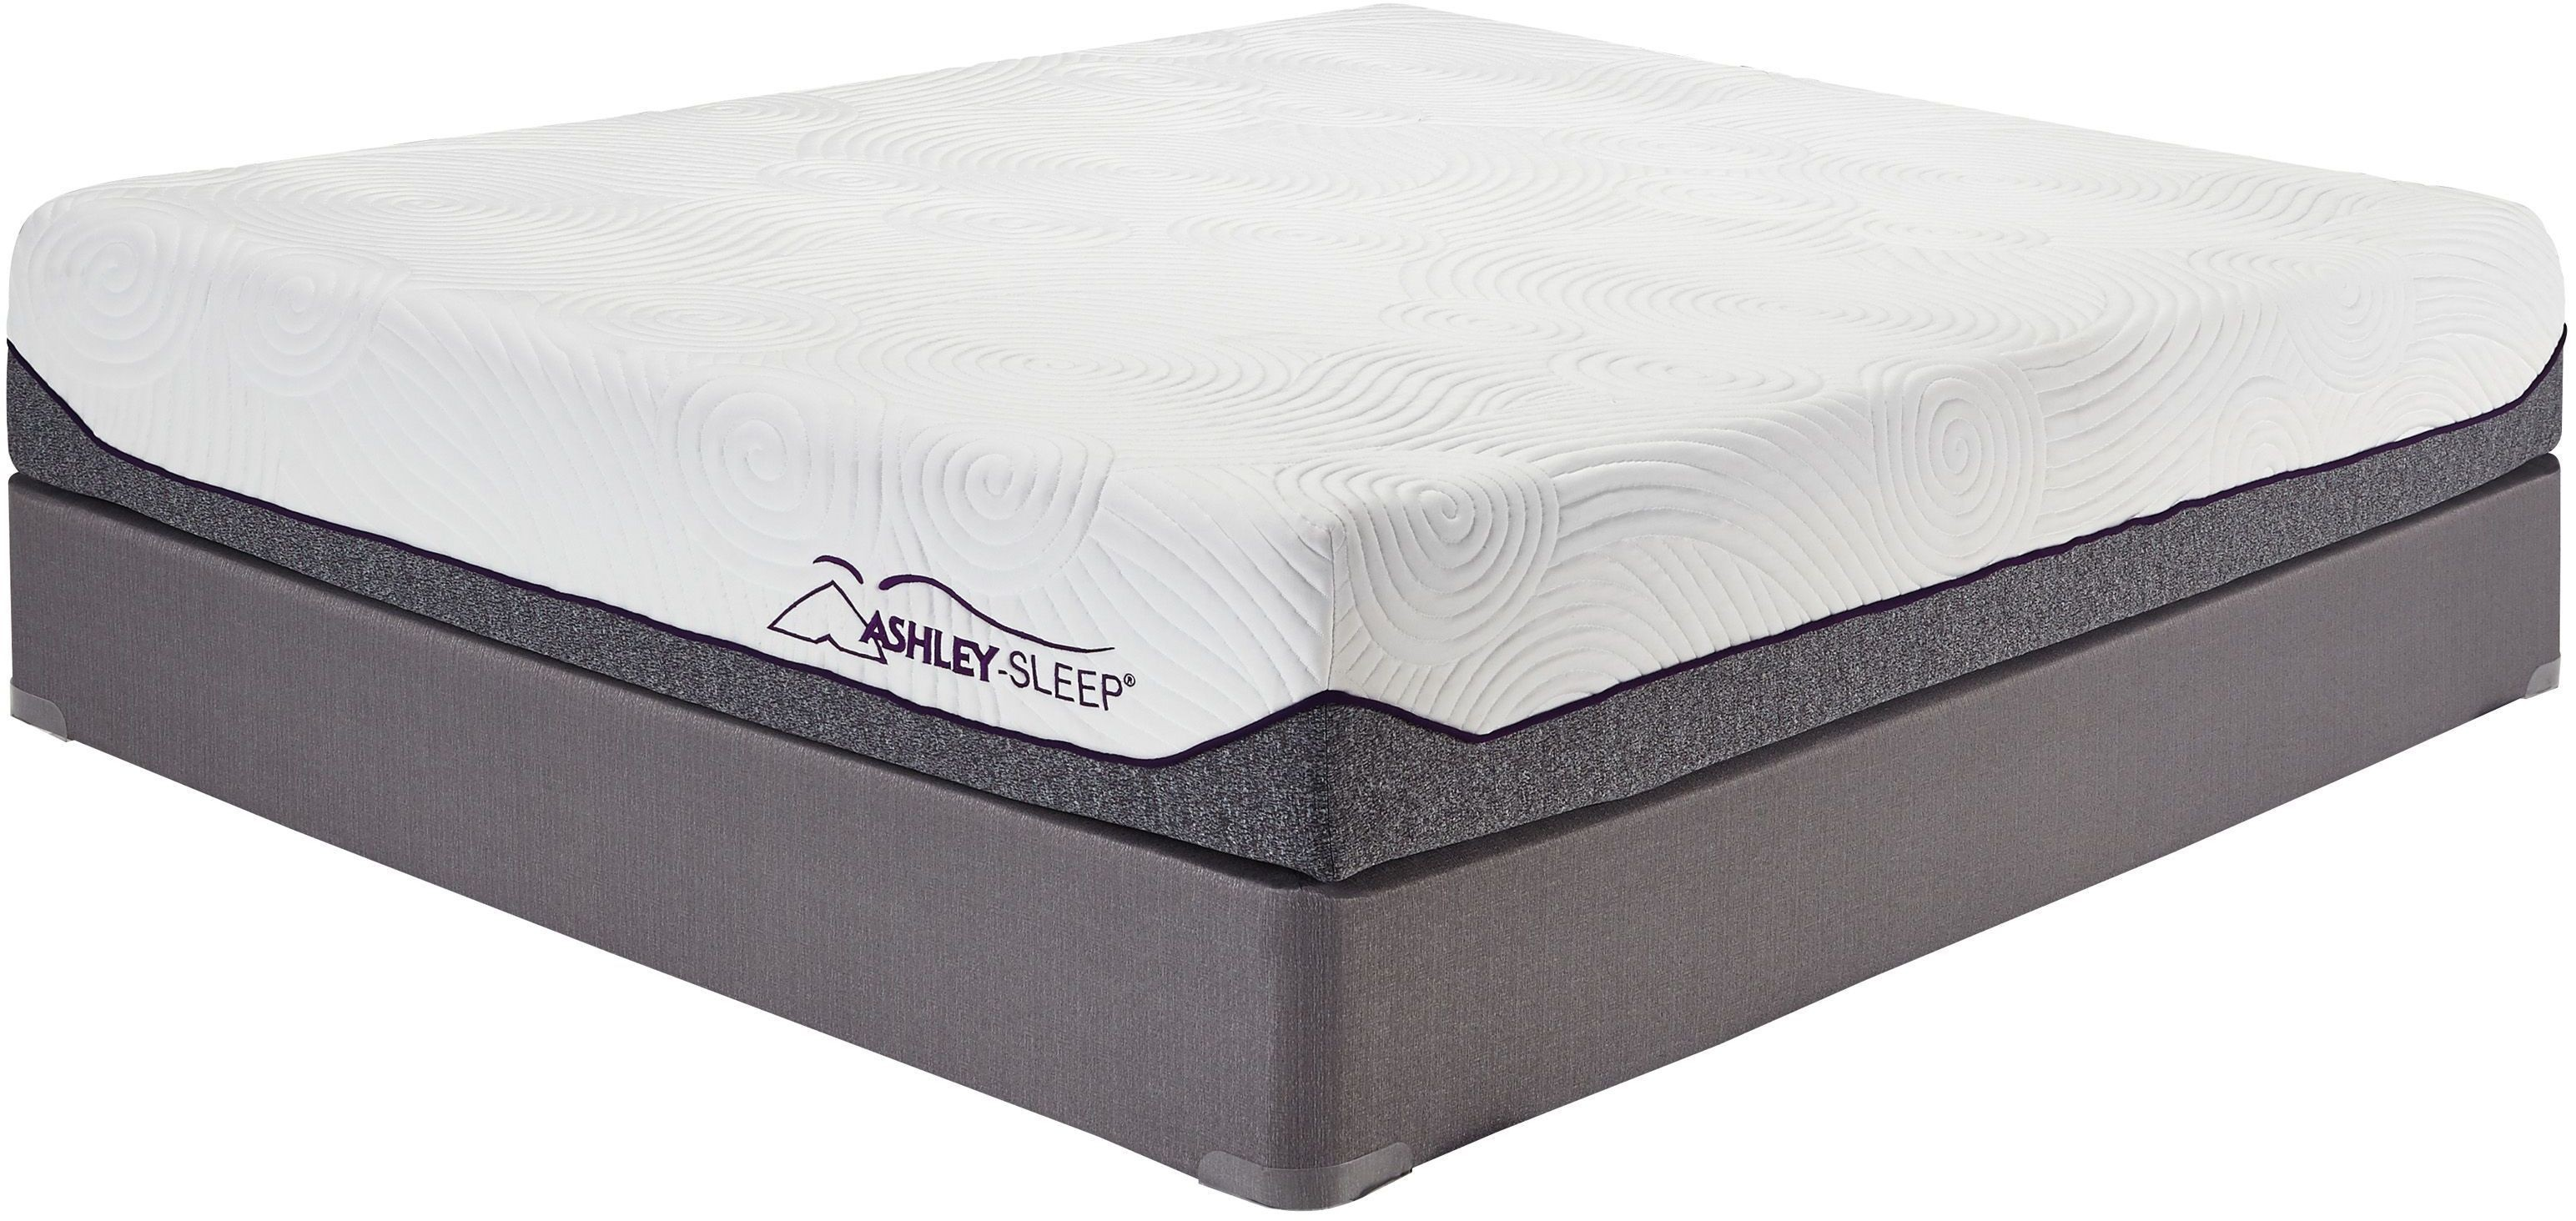 10 Inch Memory Foam White Twin Mattress M94511 Ashley